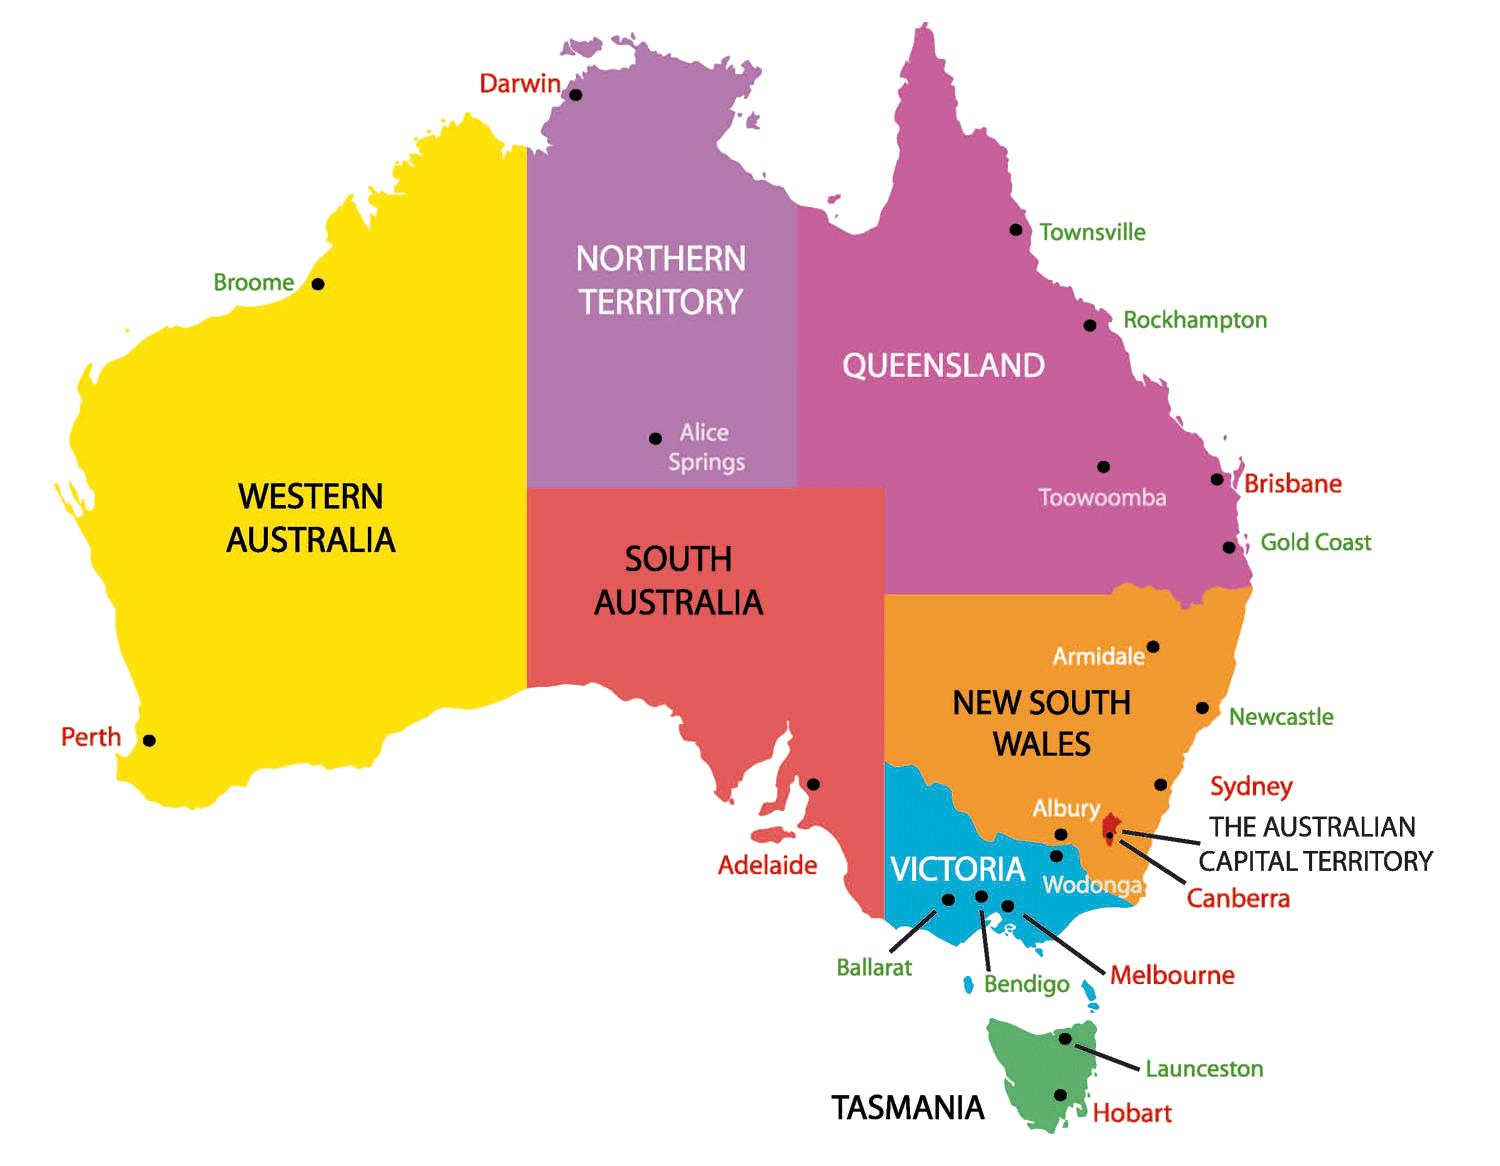 Map Of Australia And Capital Cities.Australia Capital Cities Map Map Of Australia With Capital Cities